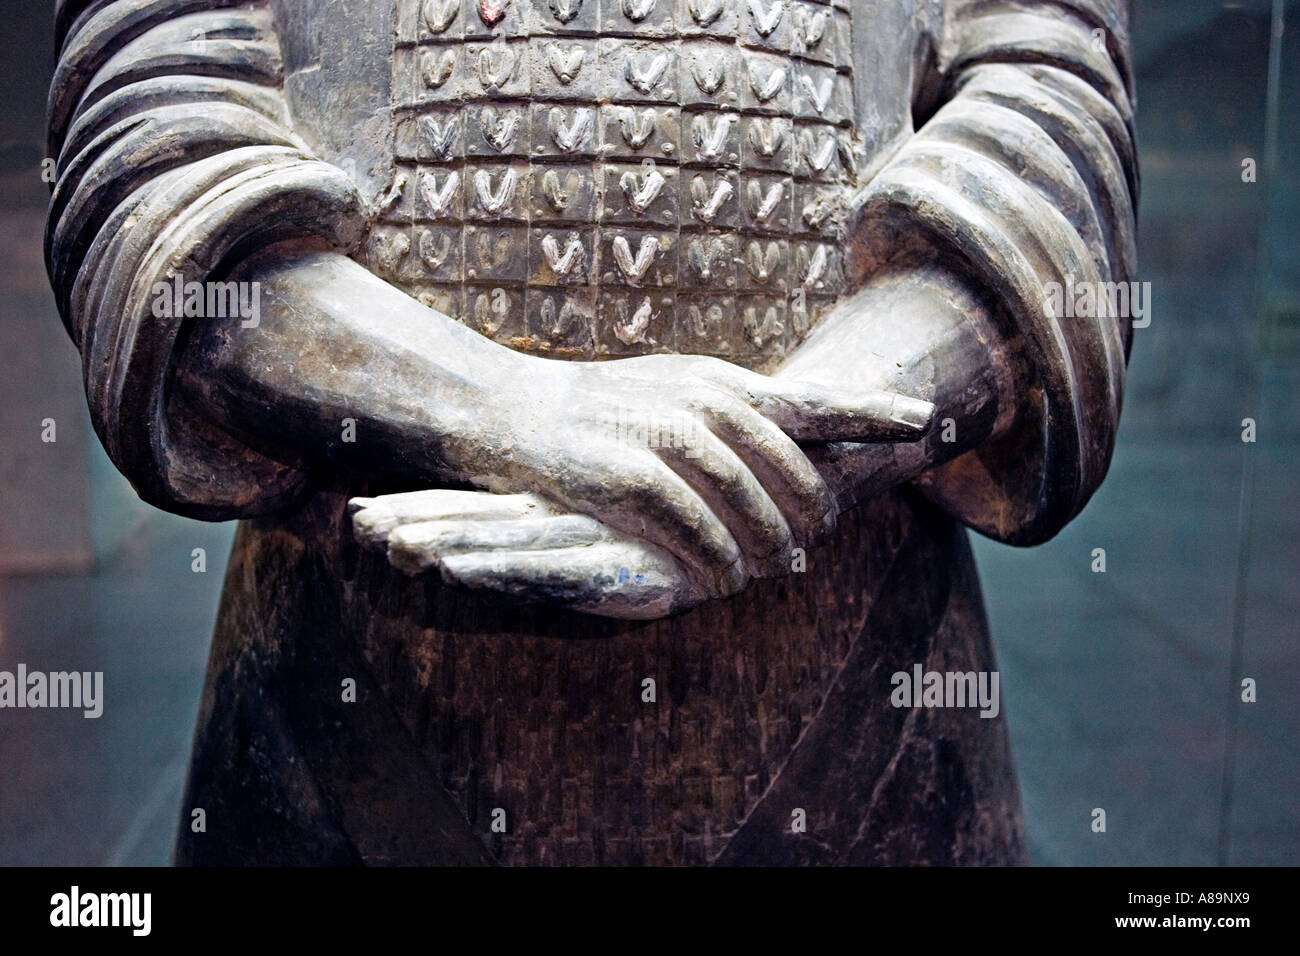 CHINA XI AN Detail of hands fingernails and chain mail armor of terracotta warrior in the museum at the site of - Stock Image